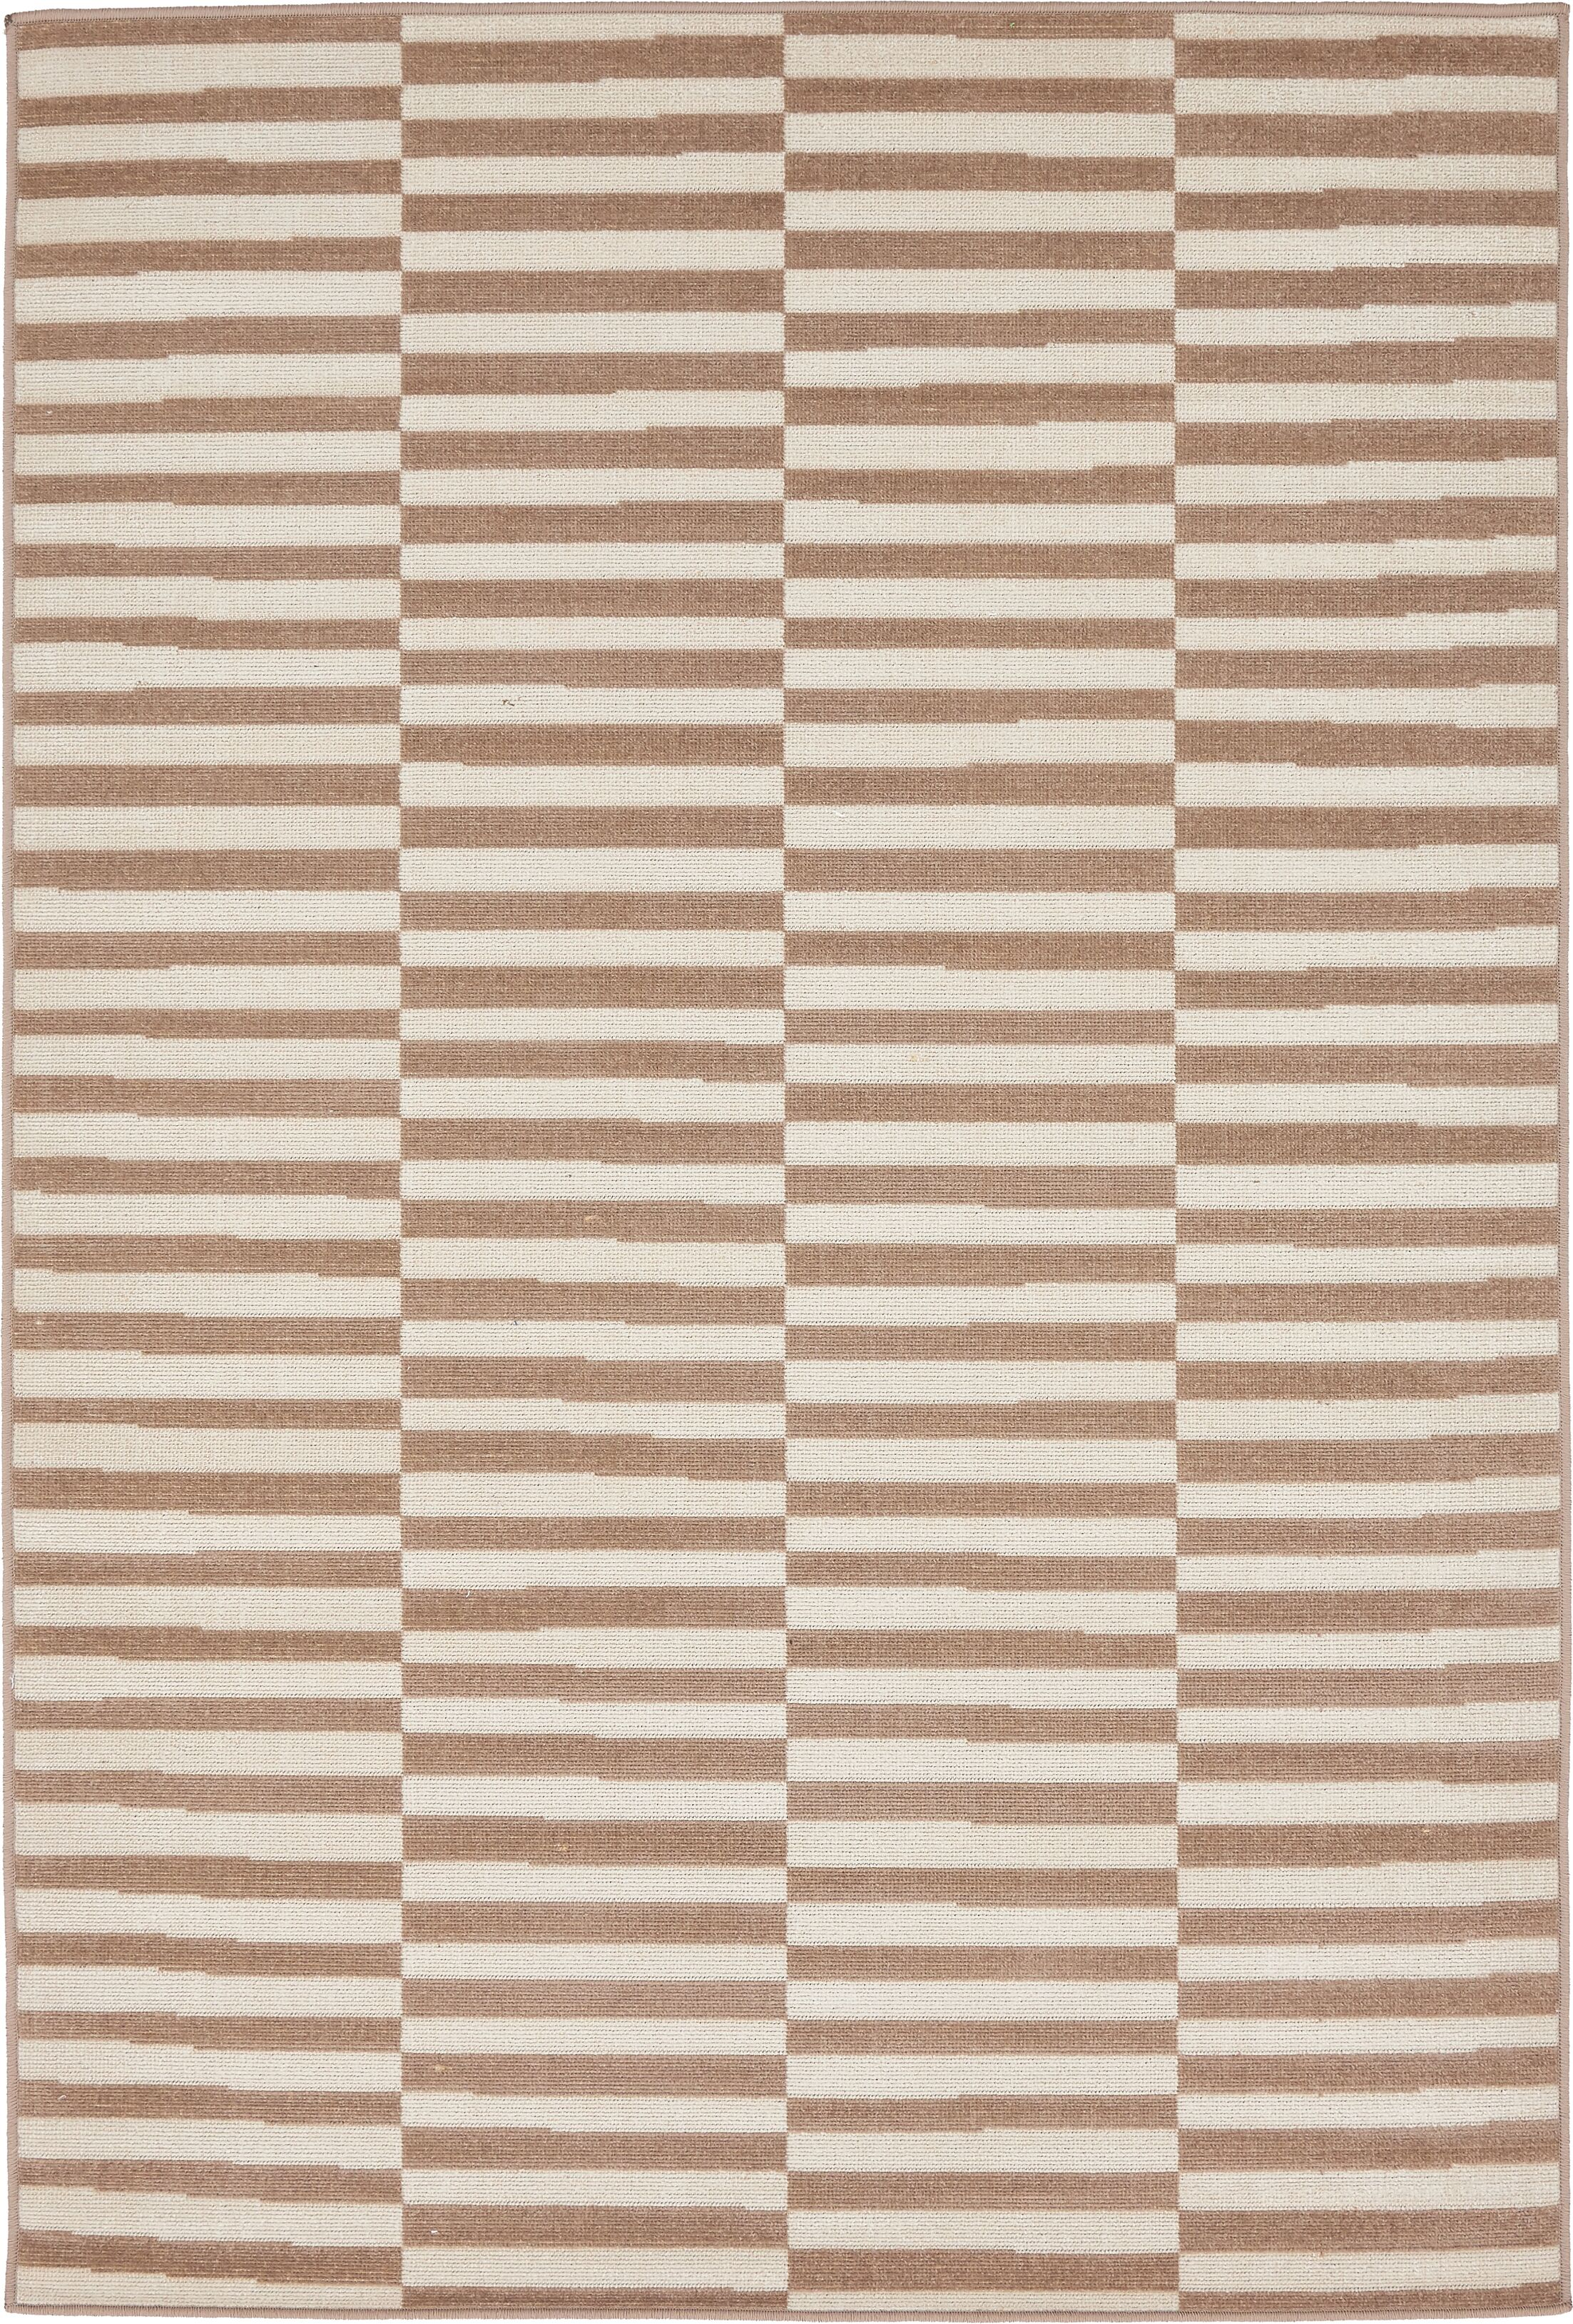 Braxton Light Brown Area Rug Rug Size: Rectangle 4' x 6'